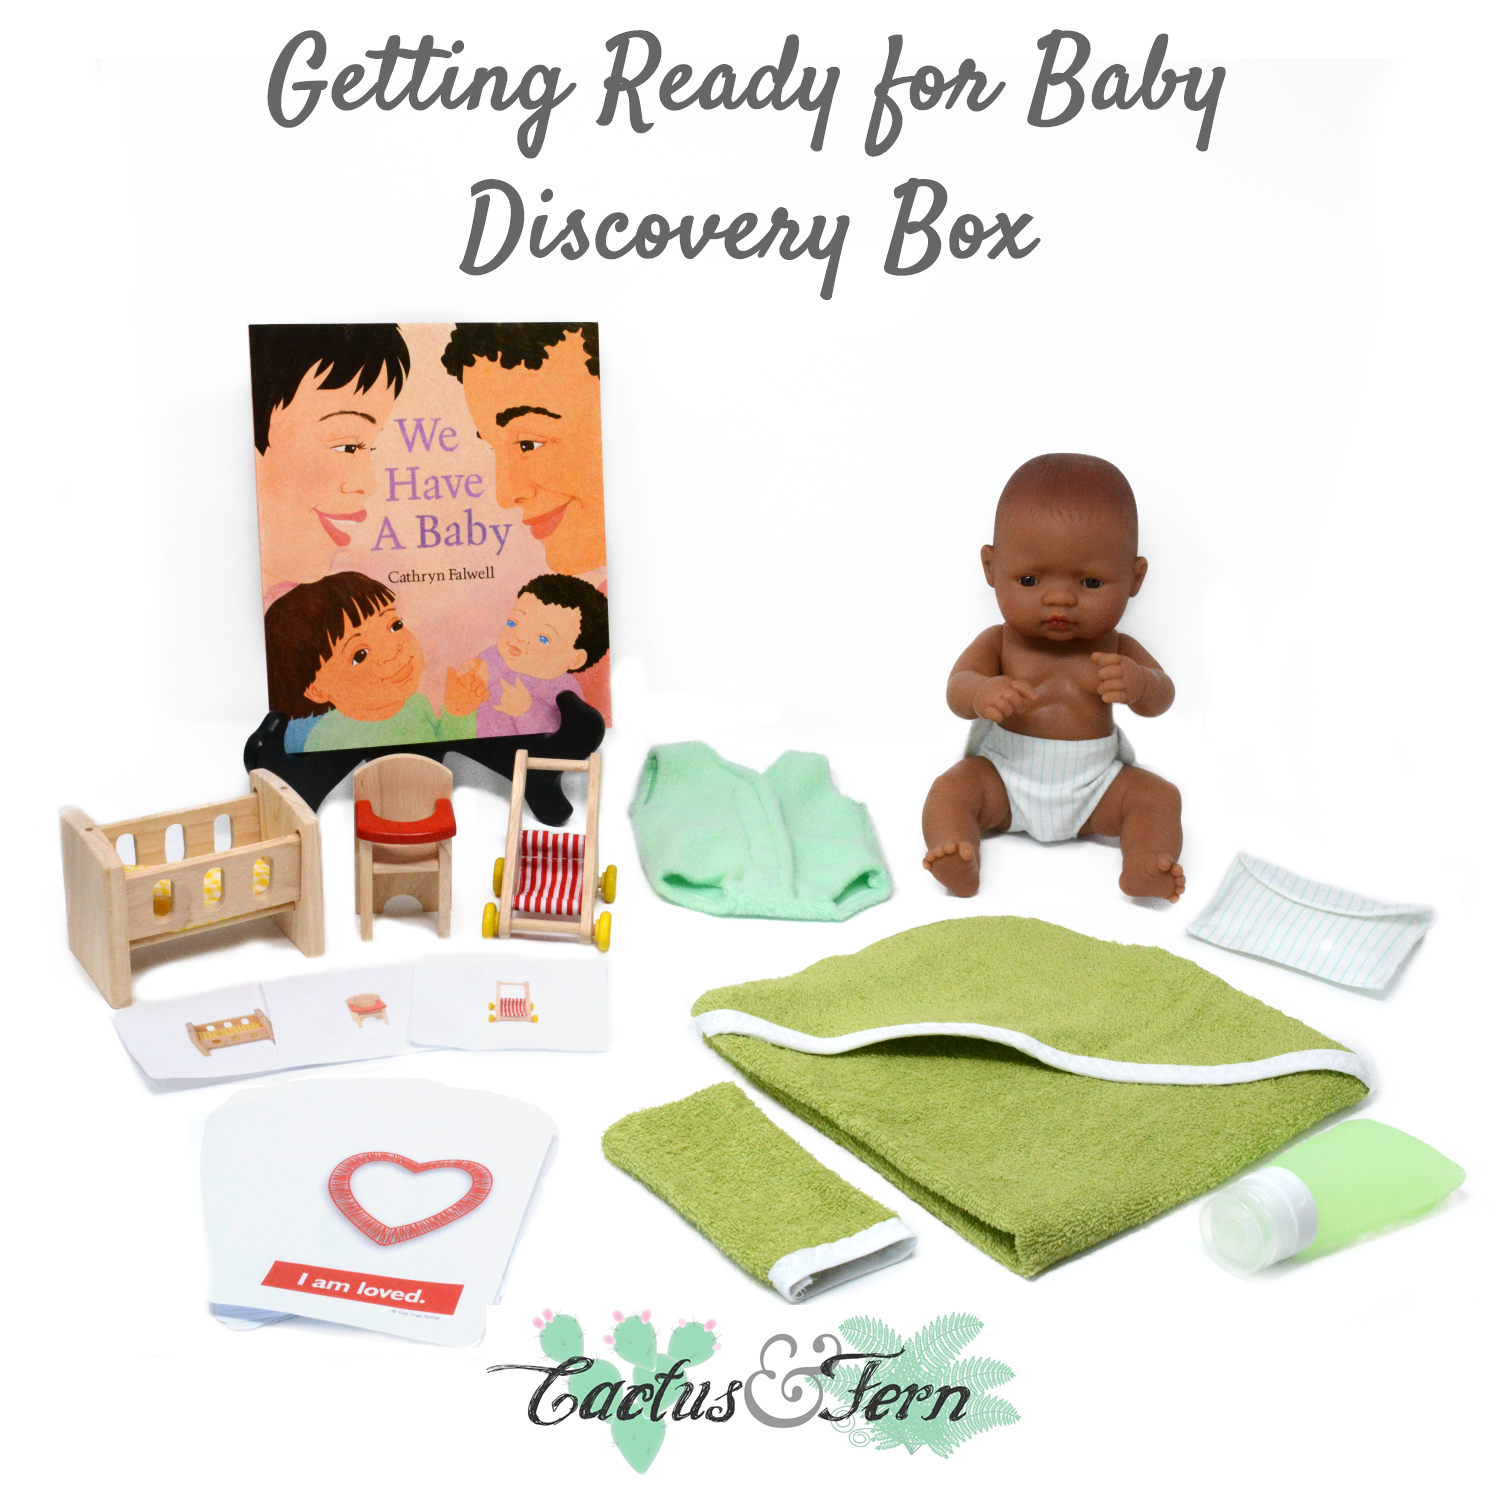 Getting Ready for Baby All Products Square FINAL.png